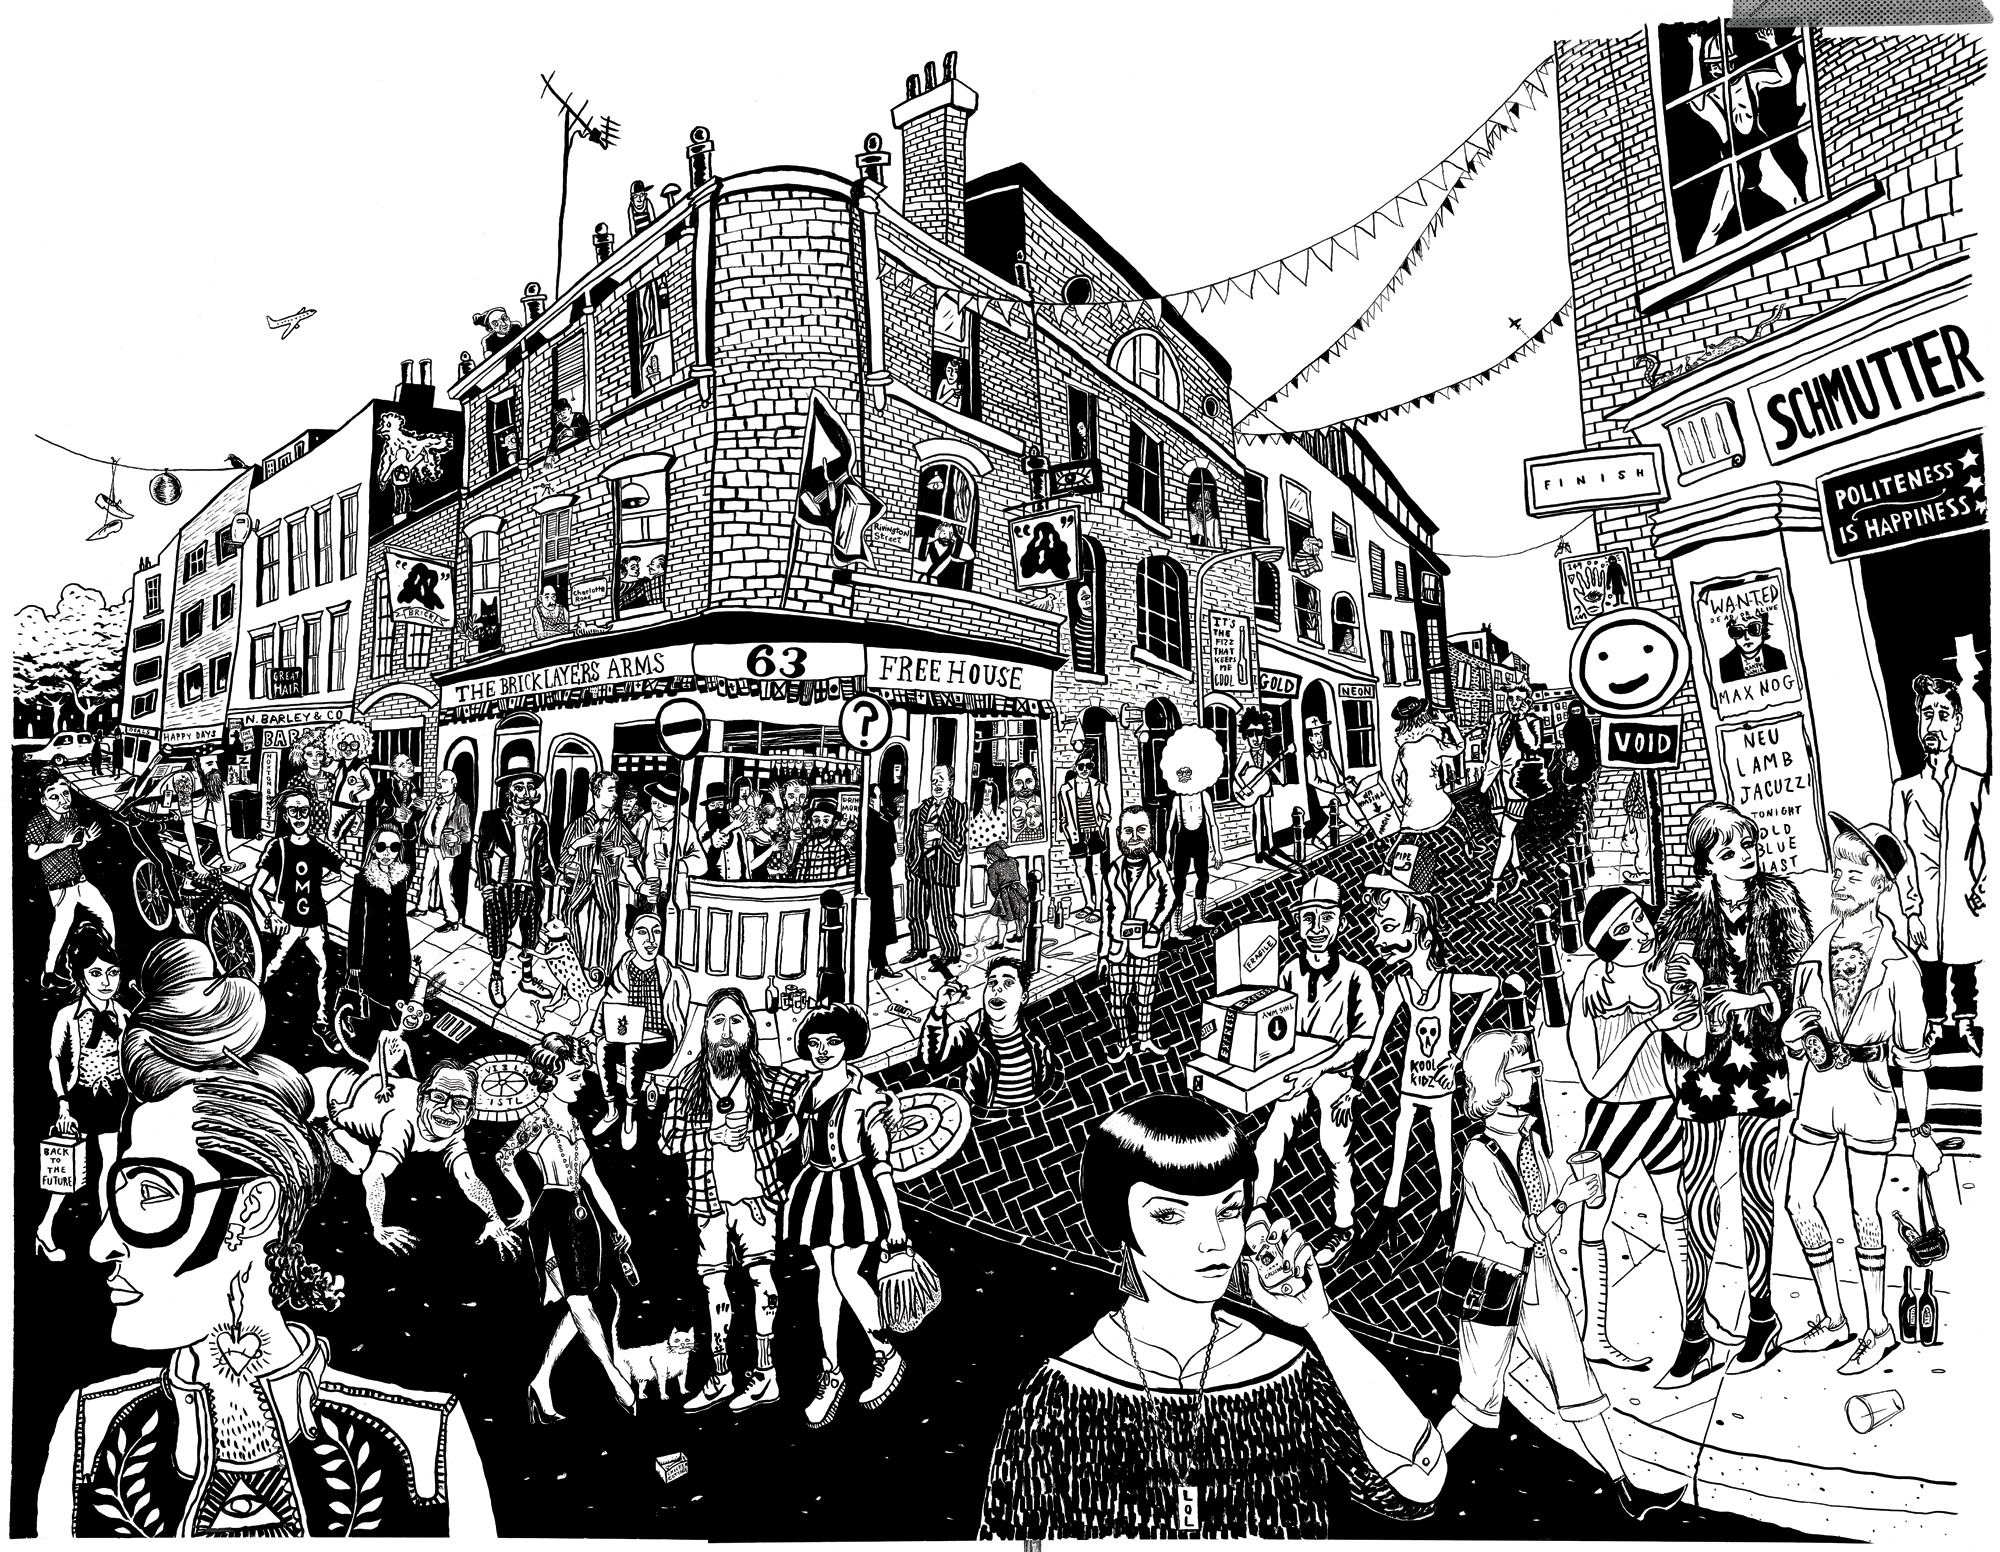 The Bricklayers Arms at the corner of Rivington Street and Charlotte Road. Featuring Mole Vessey, James Creighton, Duffy, Banksy and a man with a balloon haircut.